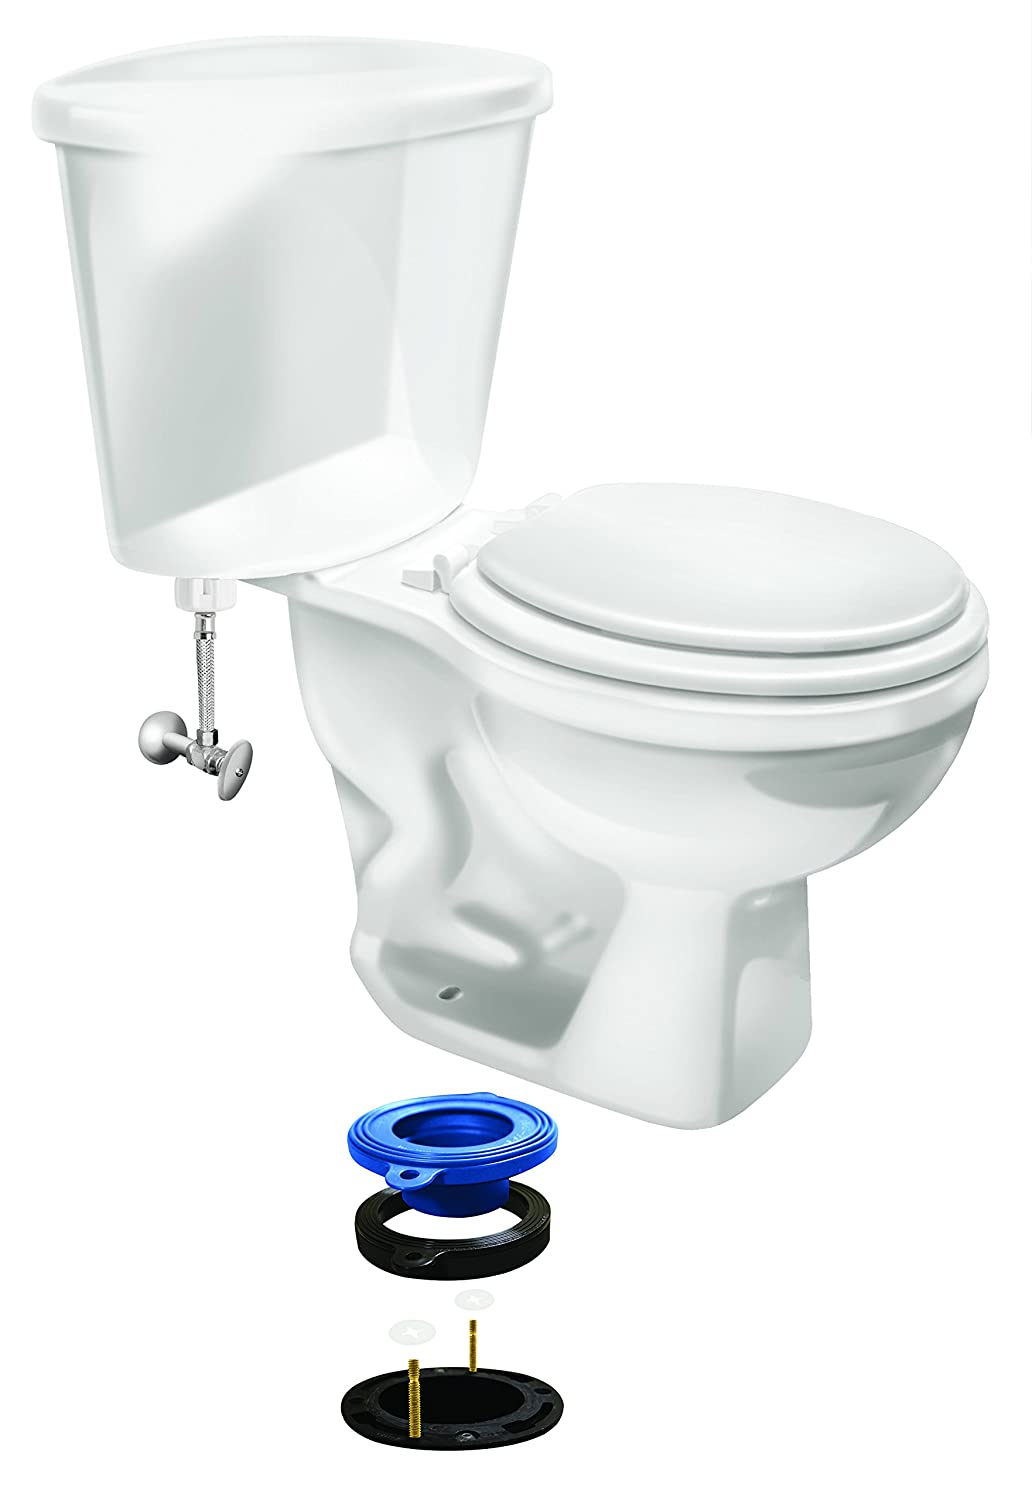 How to Repair a Toilet: Learn Why & How to DIY - Home Tips for Women